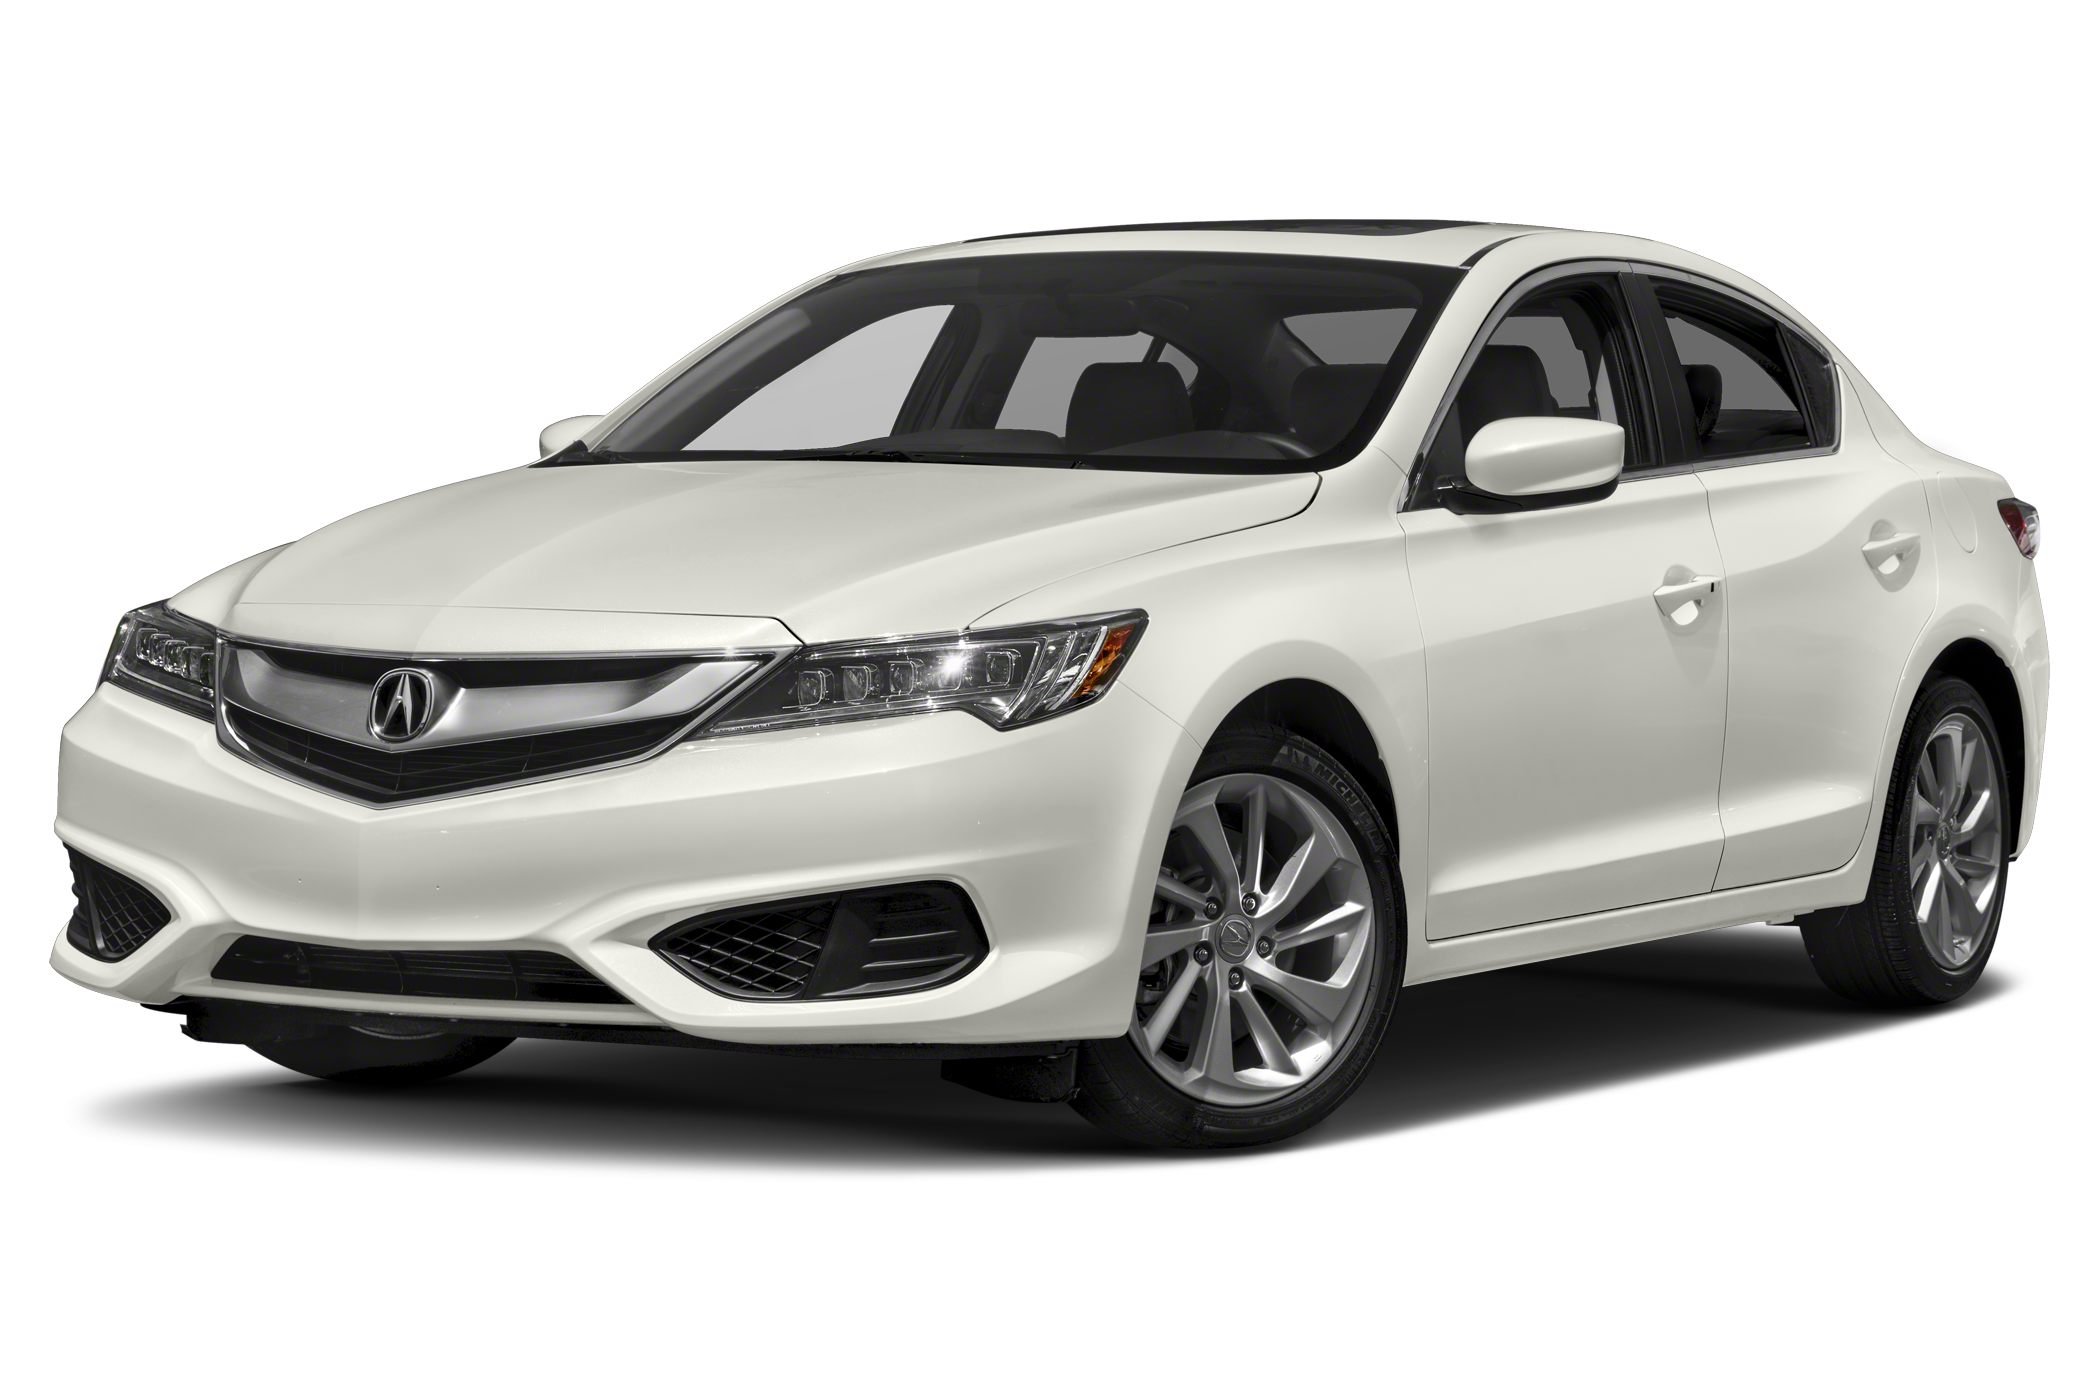 2016 acura ilx first drive photo gallery autoblog. Black Bedroom Furniture Sets. Home Design Ideas